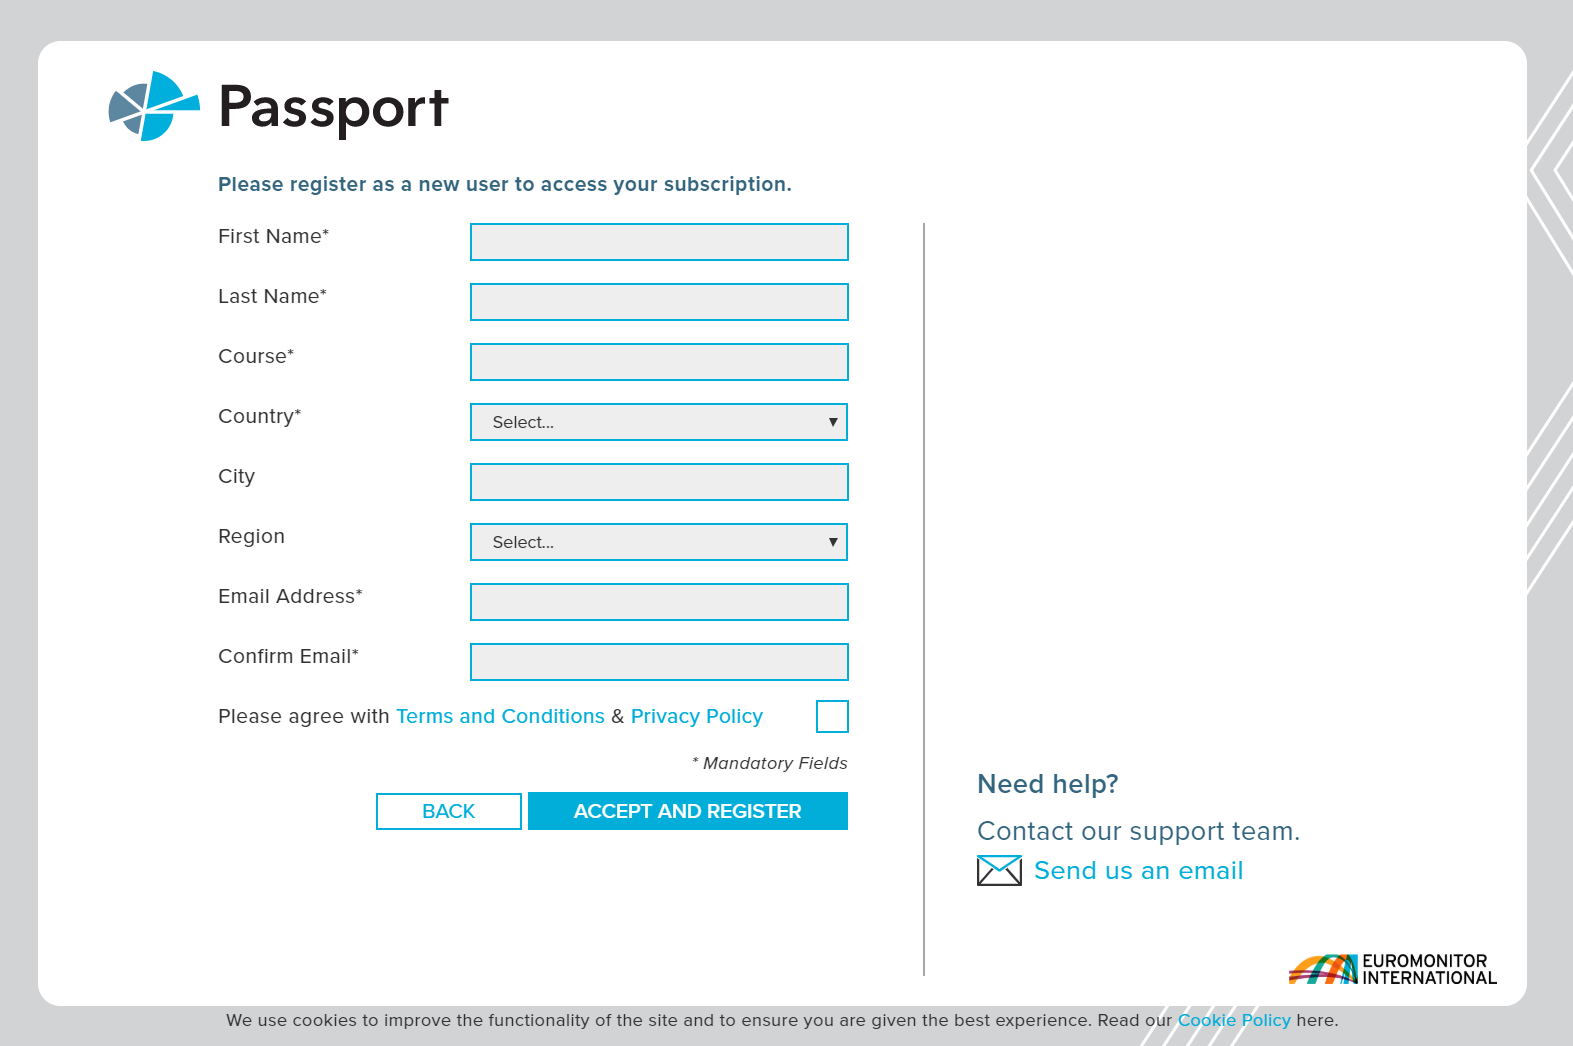 Euromonitor's registration page for users of Passport